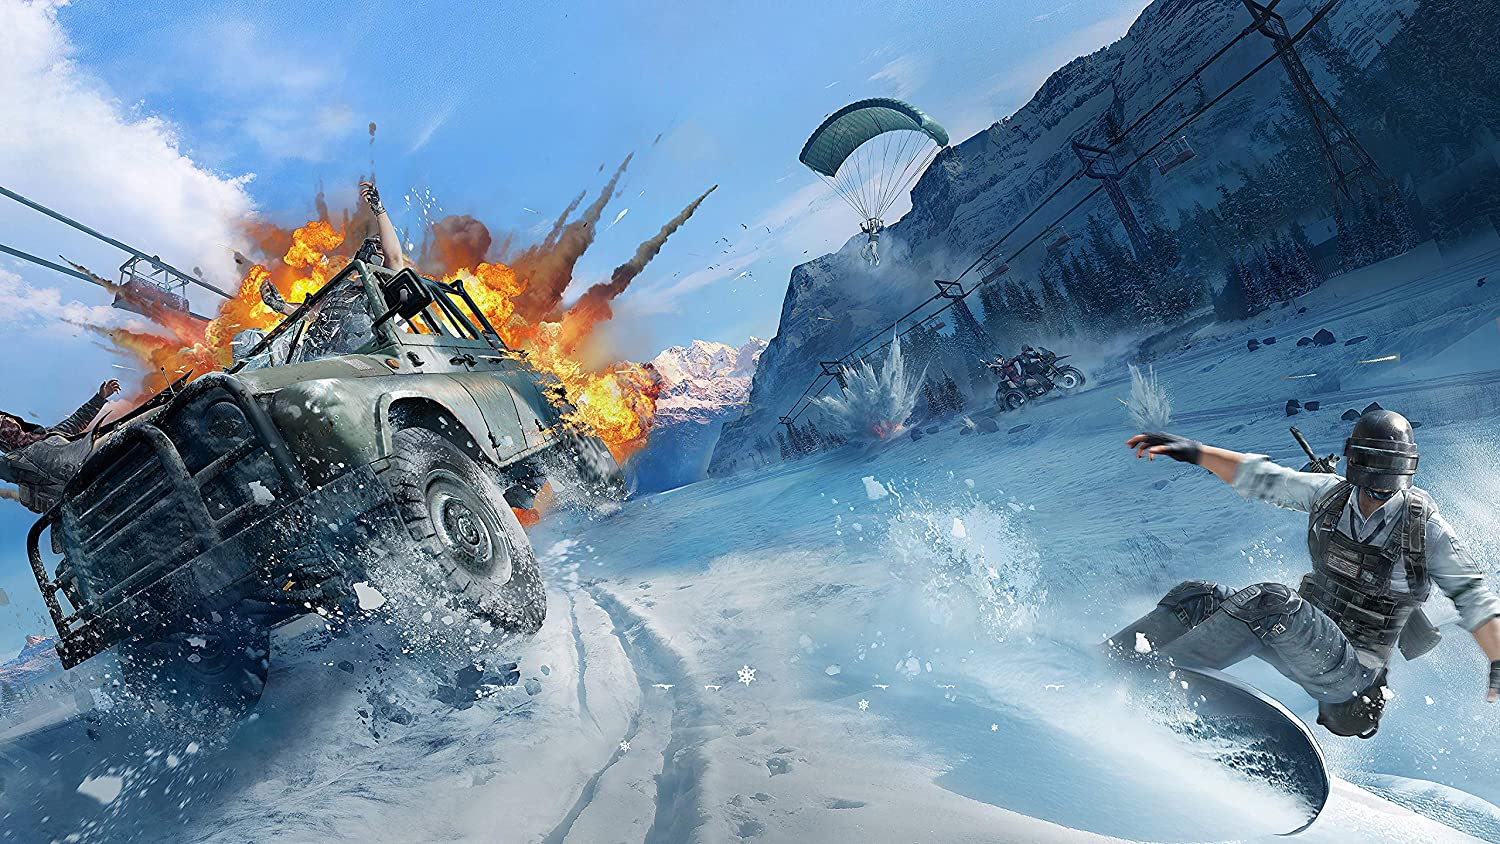 PlayerUnknowns Battlegrounds Wall Decoration,Video Game Poster Print,Weapon Artwork,Winter Wall Art,Car Poster Print Size 24x32 (61x81 cm)